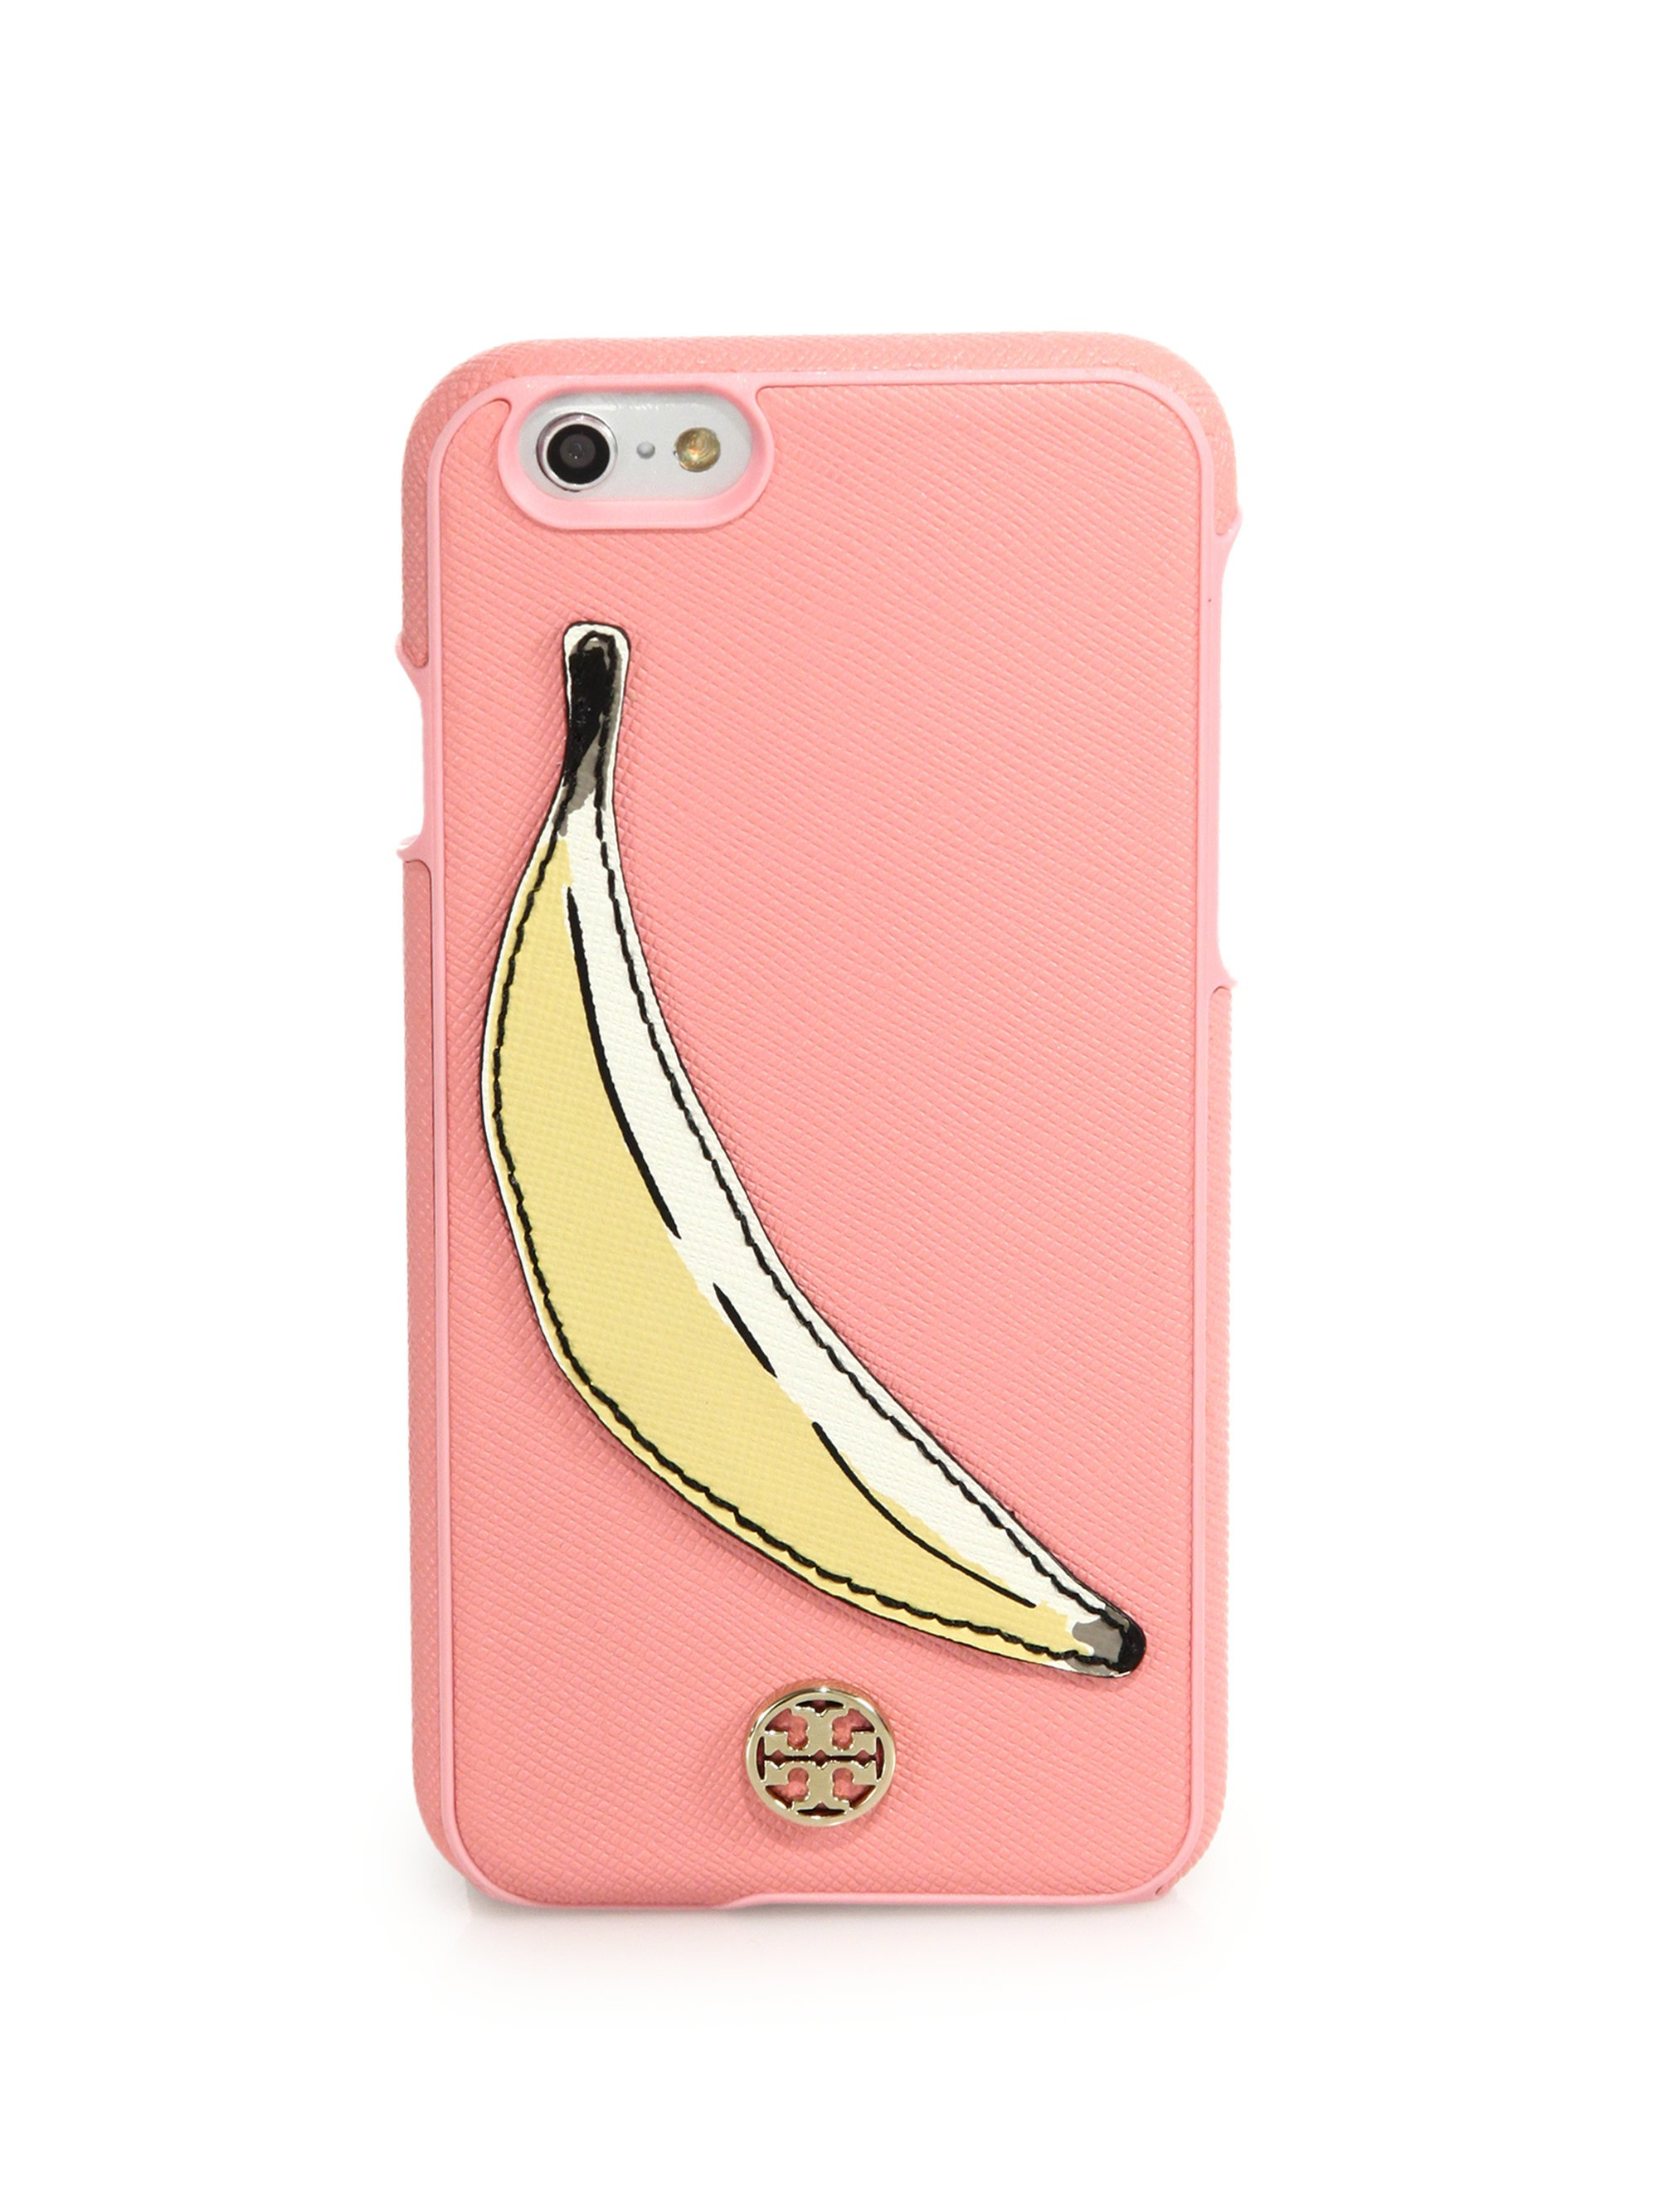 tory burch iphone case burch banana saffiano leather iphone 6 in pink 16280